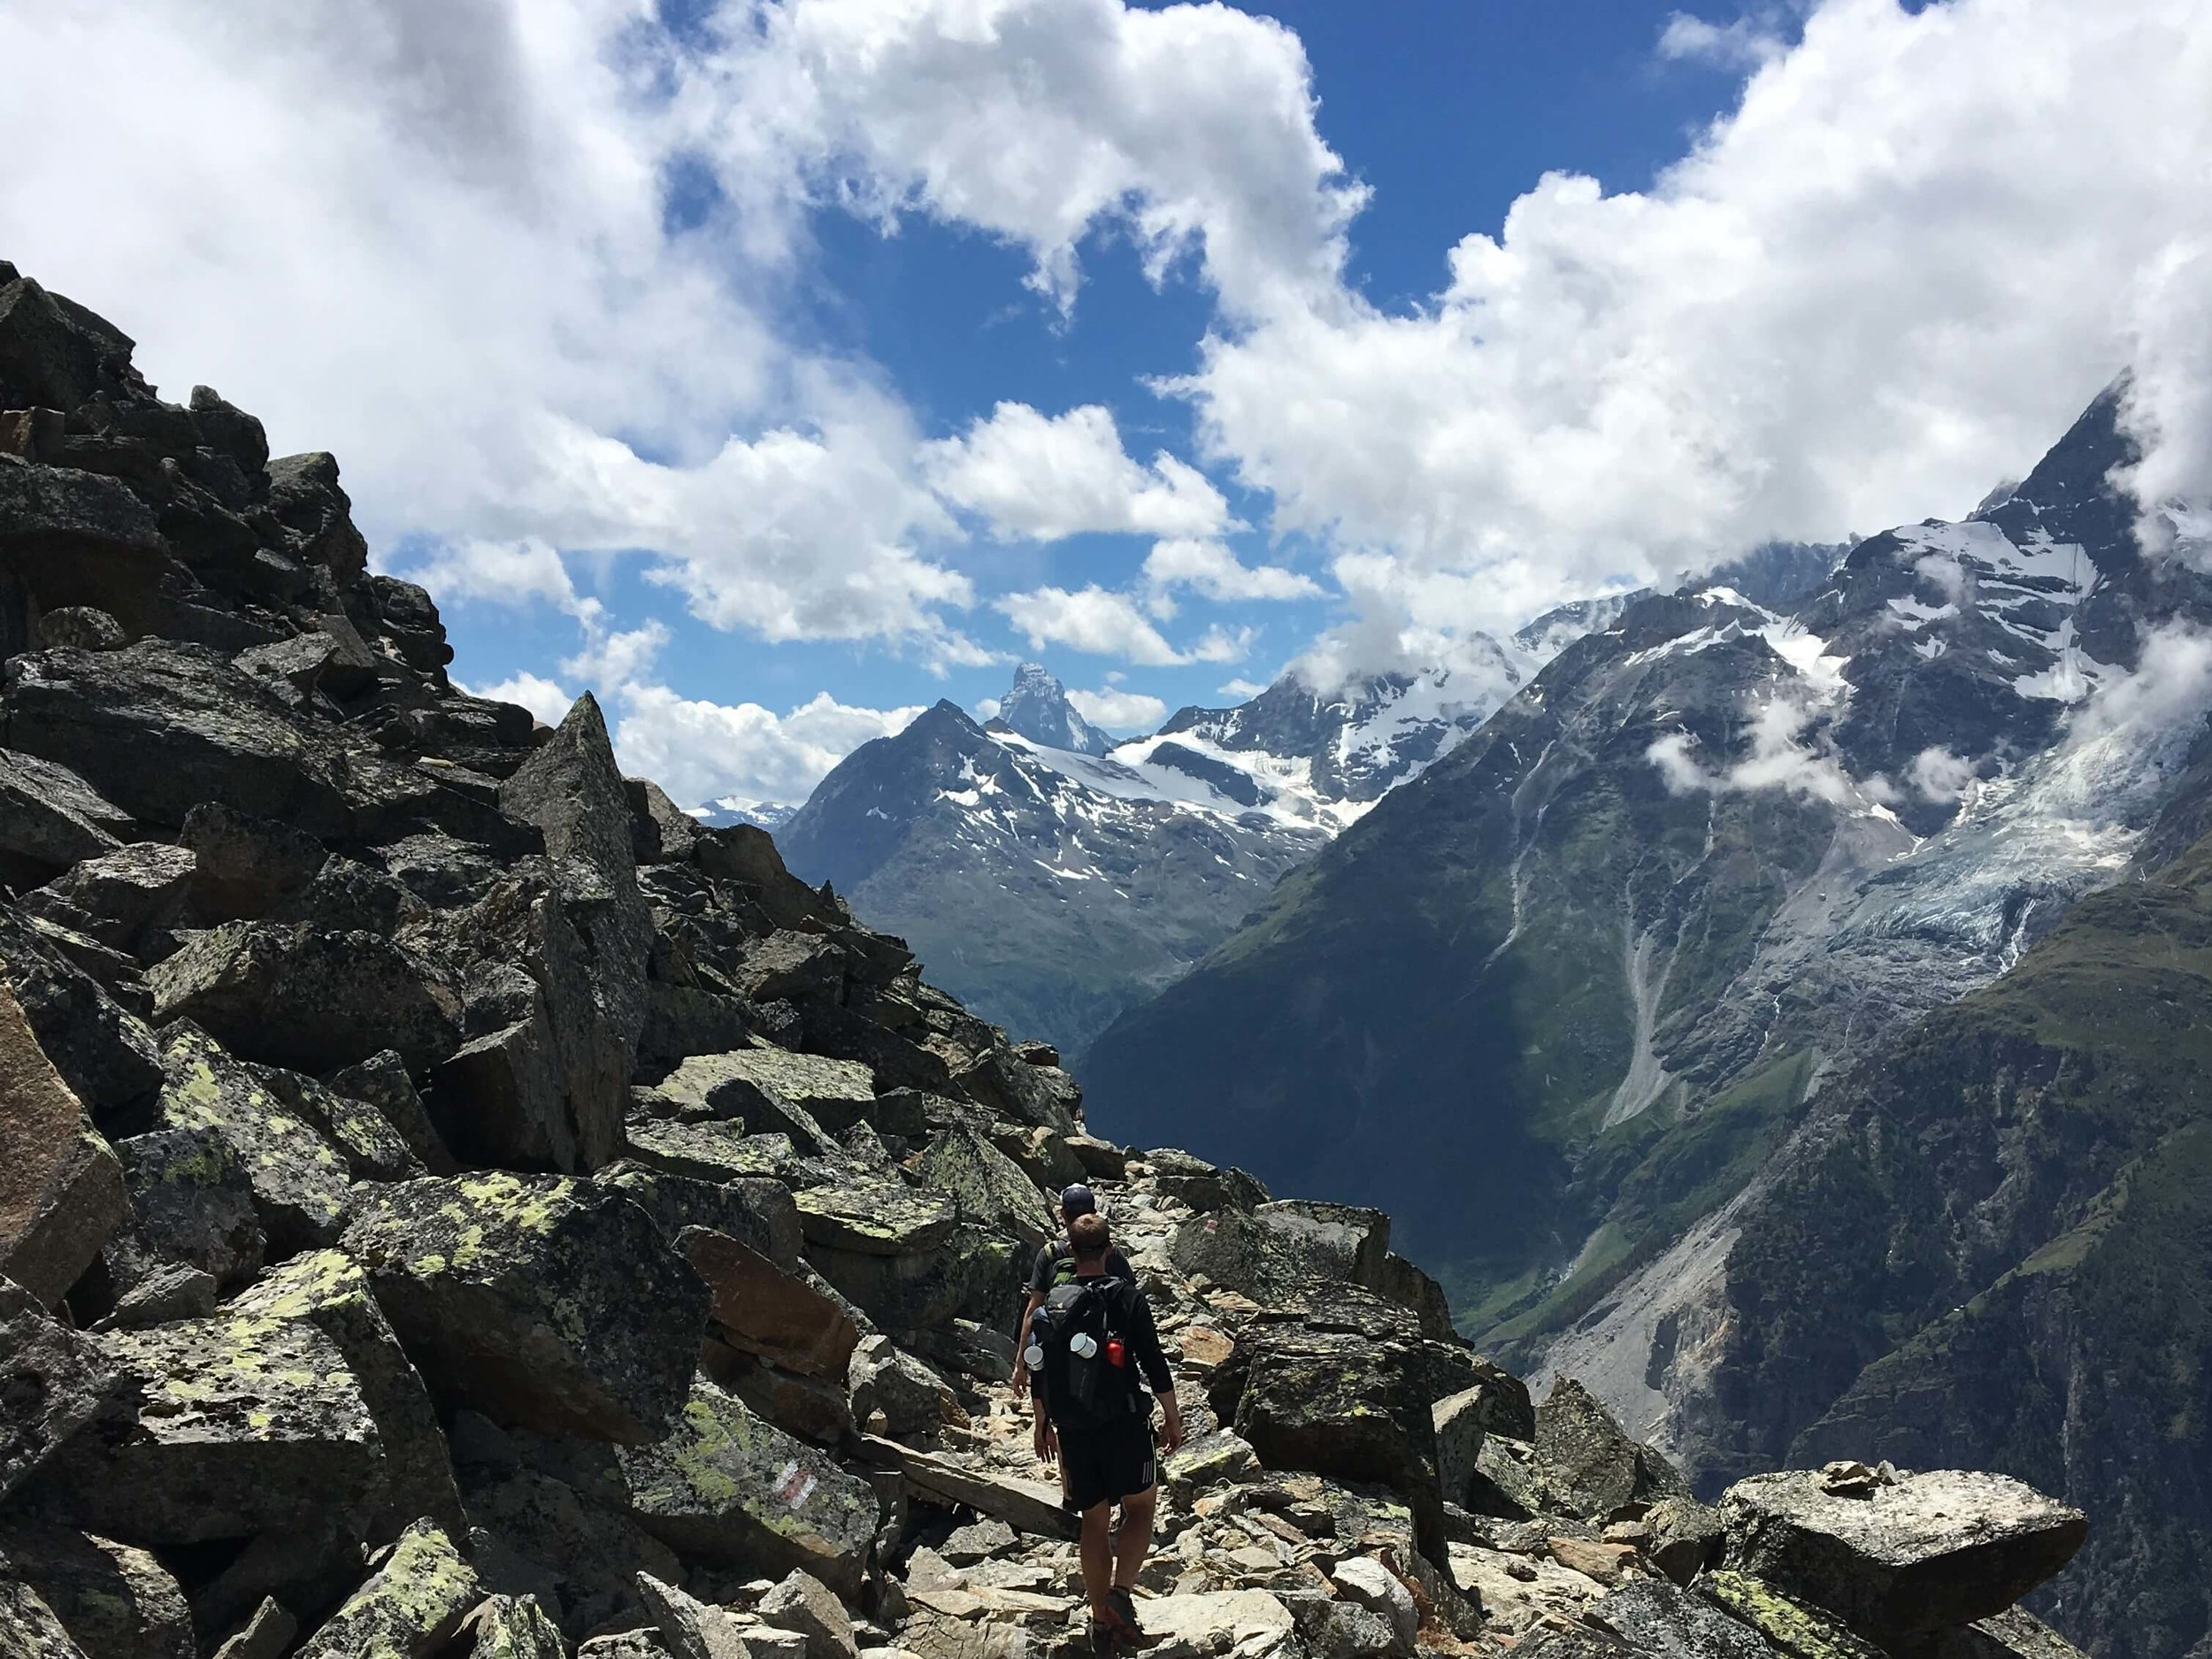 Breathtaking balcony:  The views from Europaweg trail and challenging terrain will take your breath away :) It is a highlight that features on the Walker's Haute Route and Tour of Monte Rosa